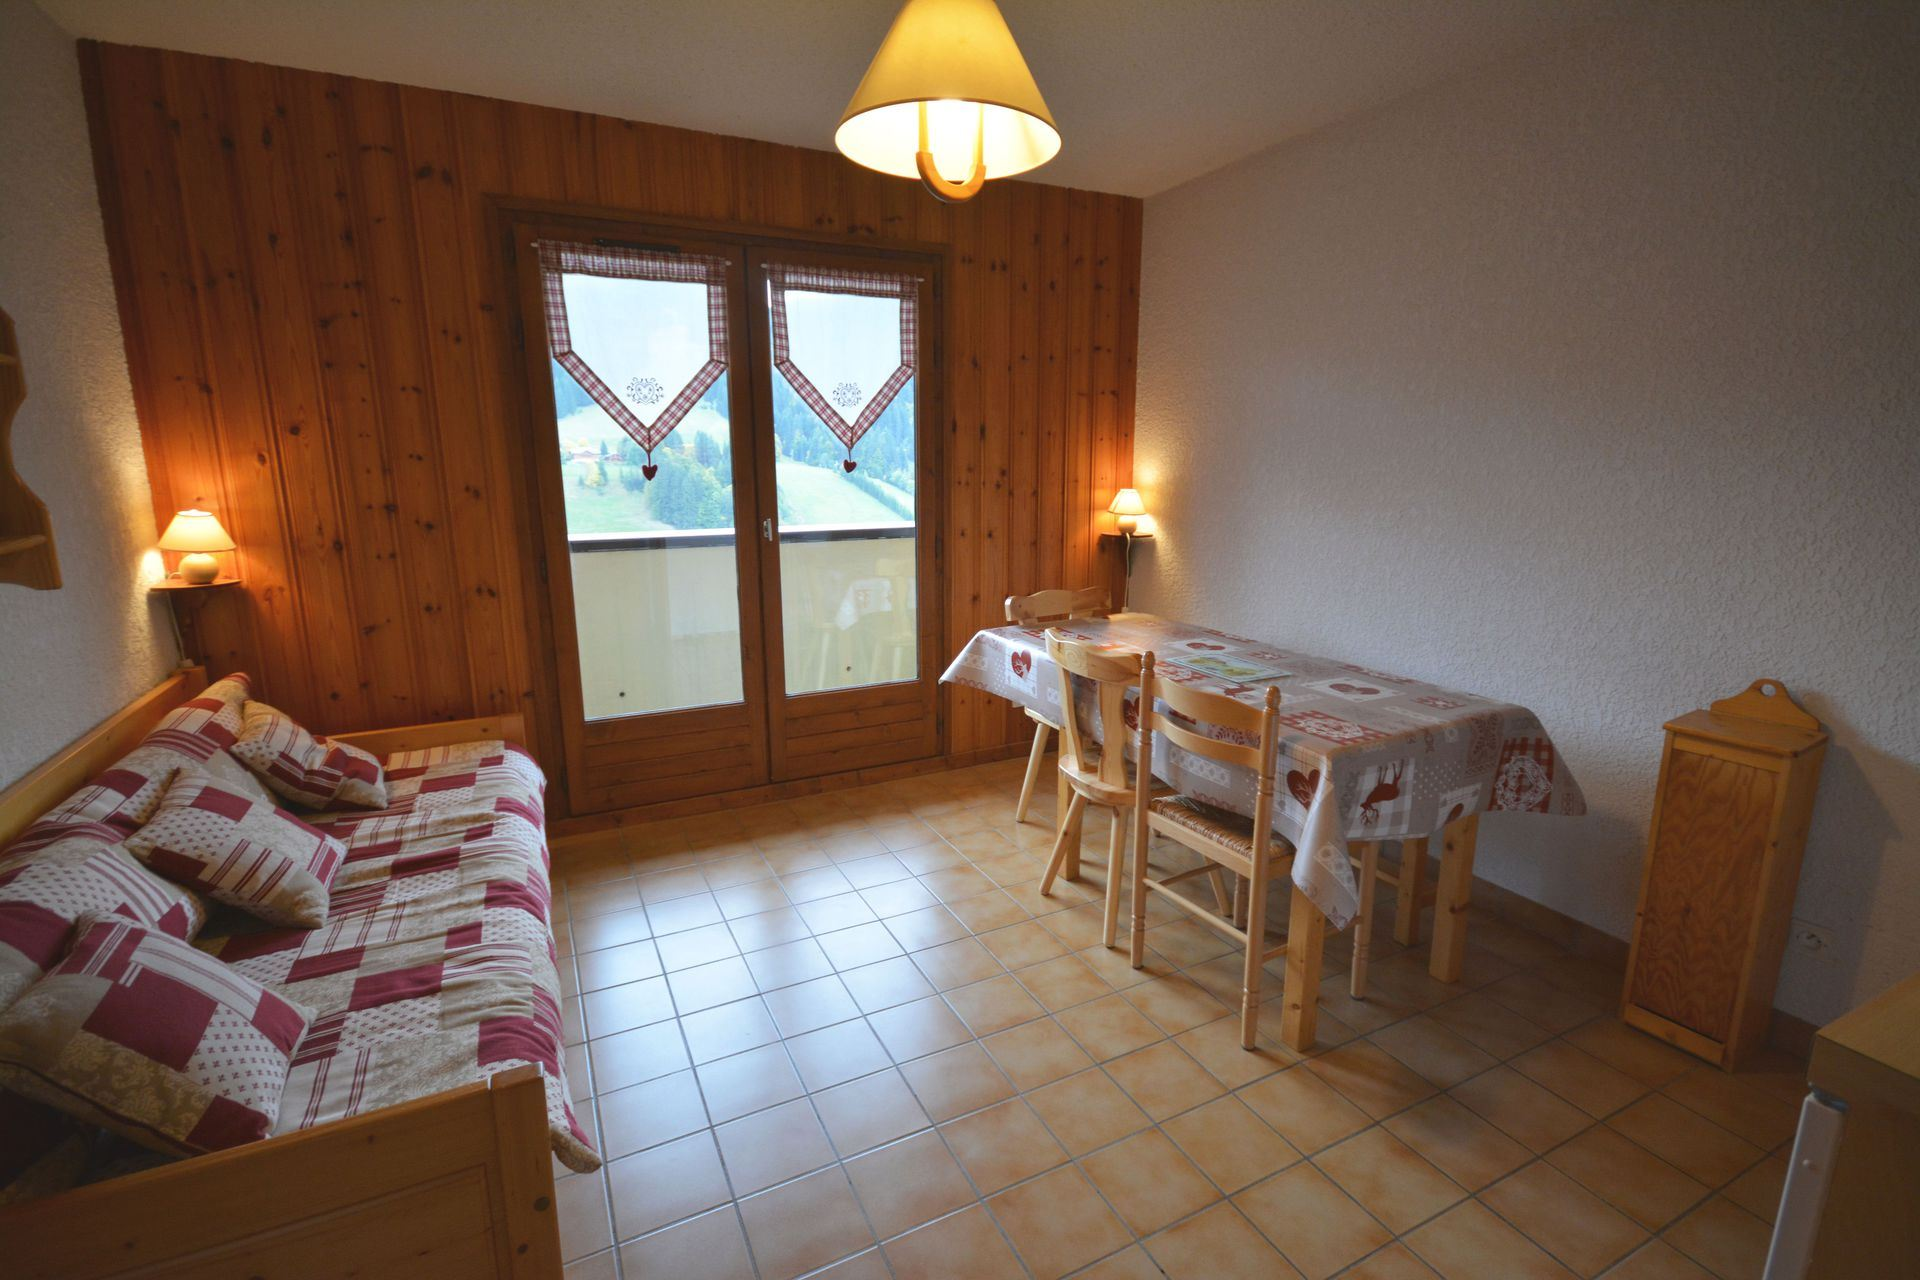 Chantemerle C9 - AO 2143 - 2 rooms + cabine (Not classified) - 5 people - 26m²